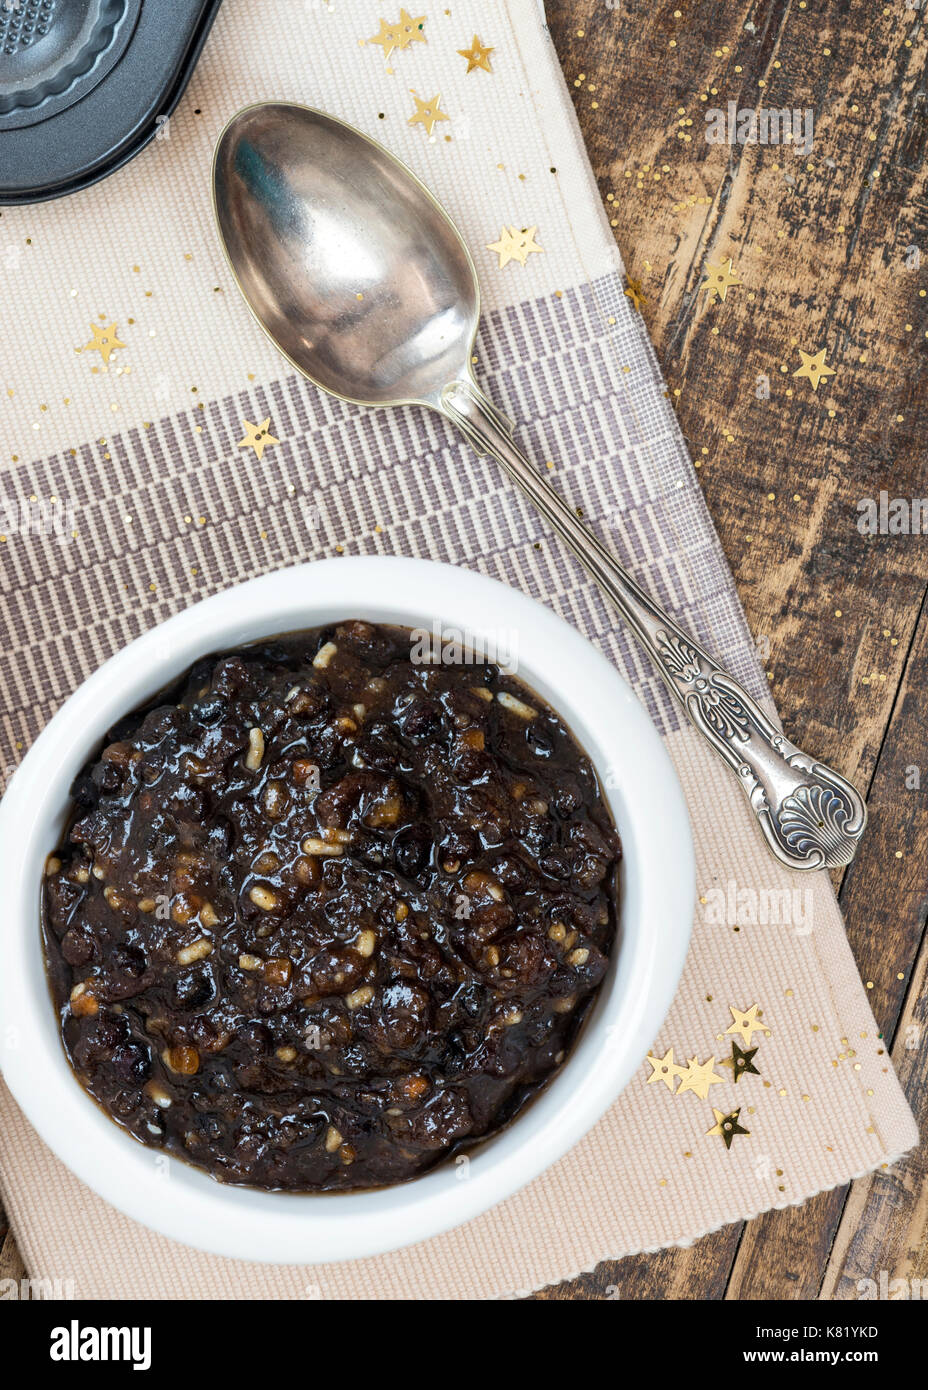 vertical image of homemade traditional Christmas mincemeat made with mixed fruit and brandy in a white bowl, focus on the subject , background de focu - Stock Image